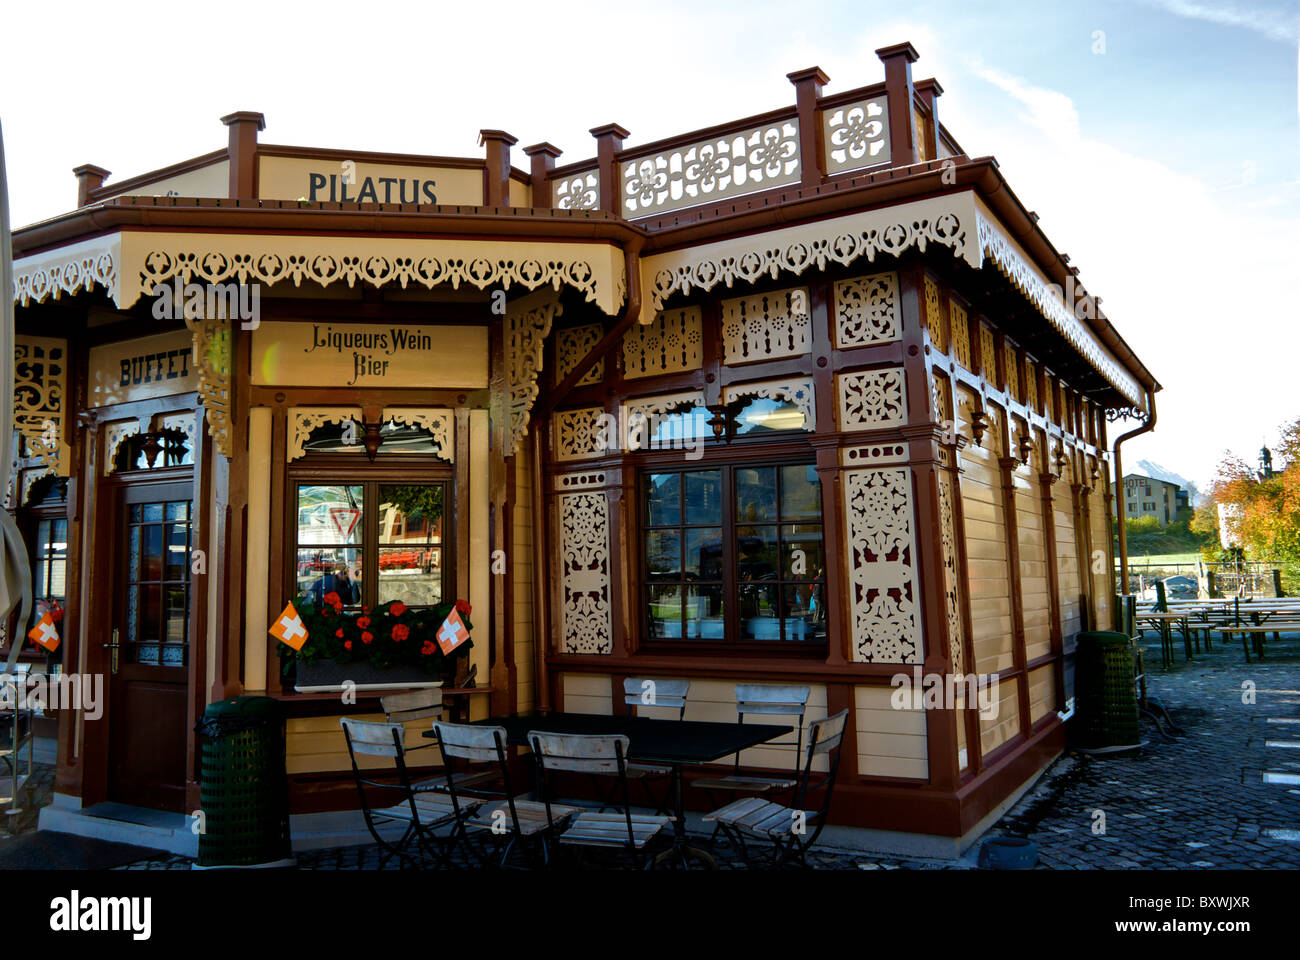 Restaurant Depot Stock Photos & Restaurant Depot Stock Images - Alamy